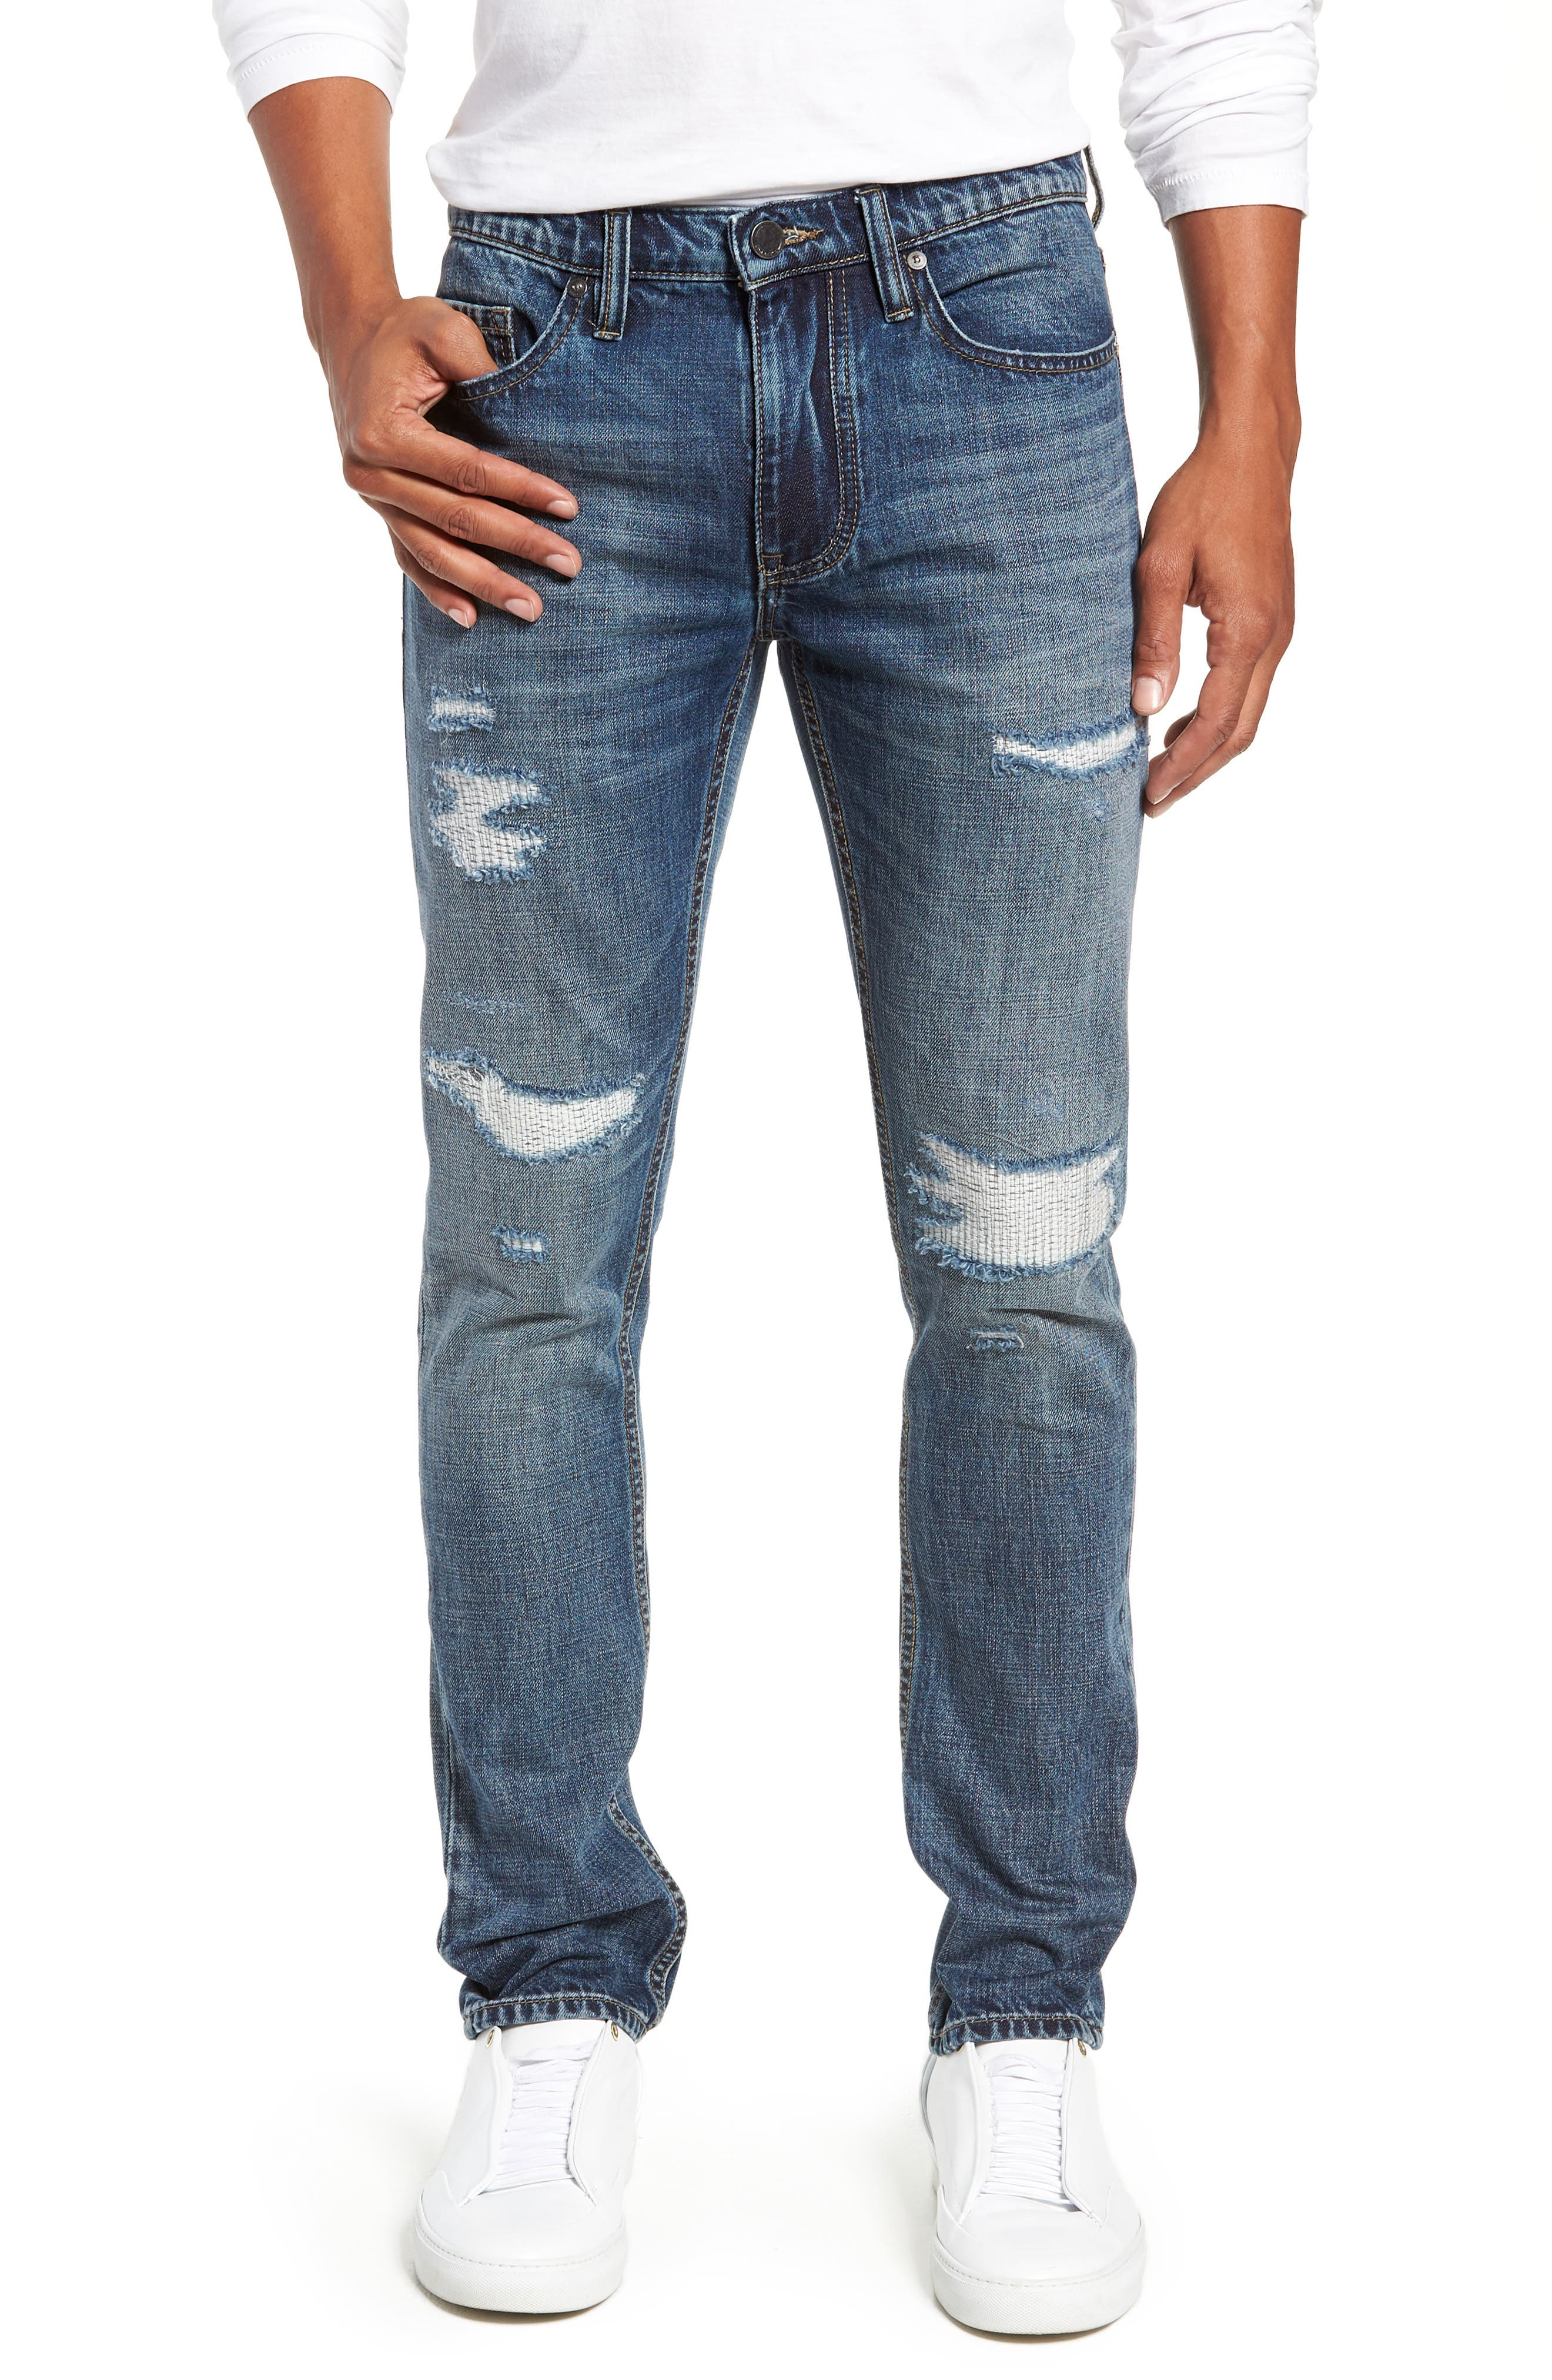 Wooster Slim Fit Distressed Selvedge Jeans,                         Main,                         color, PERMISSIBLE HOT